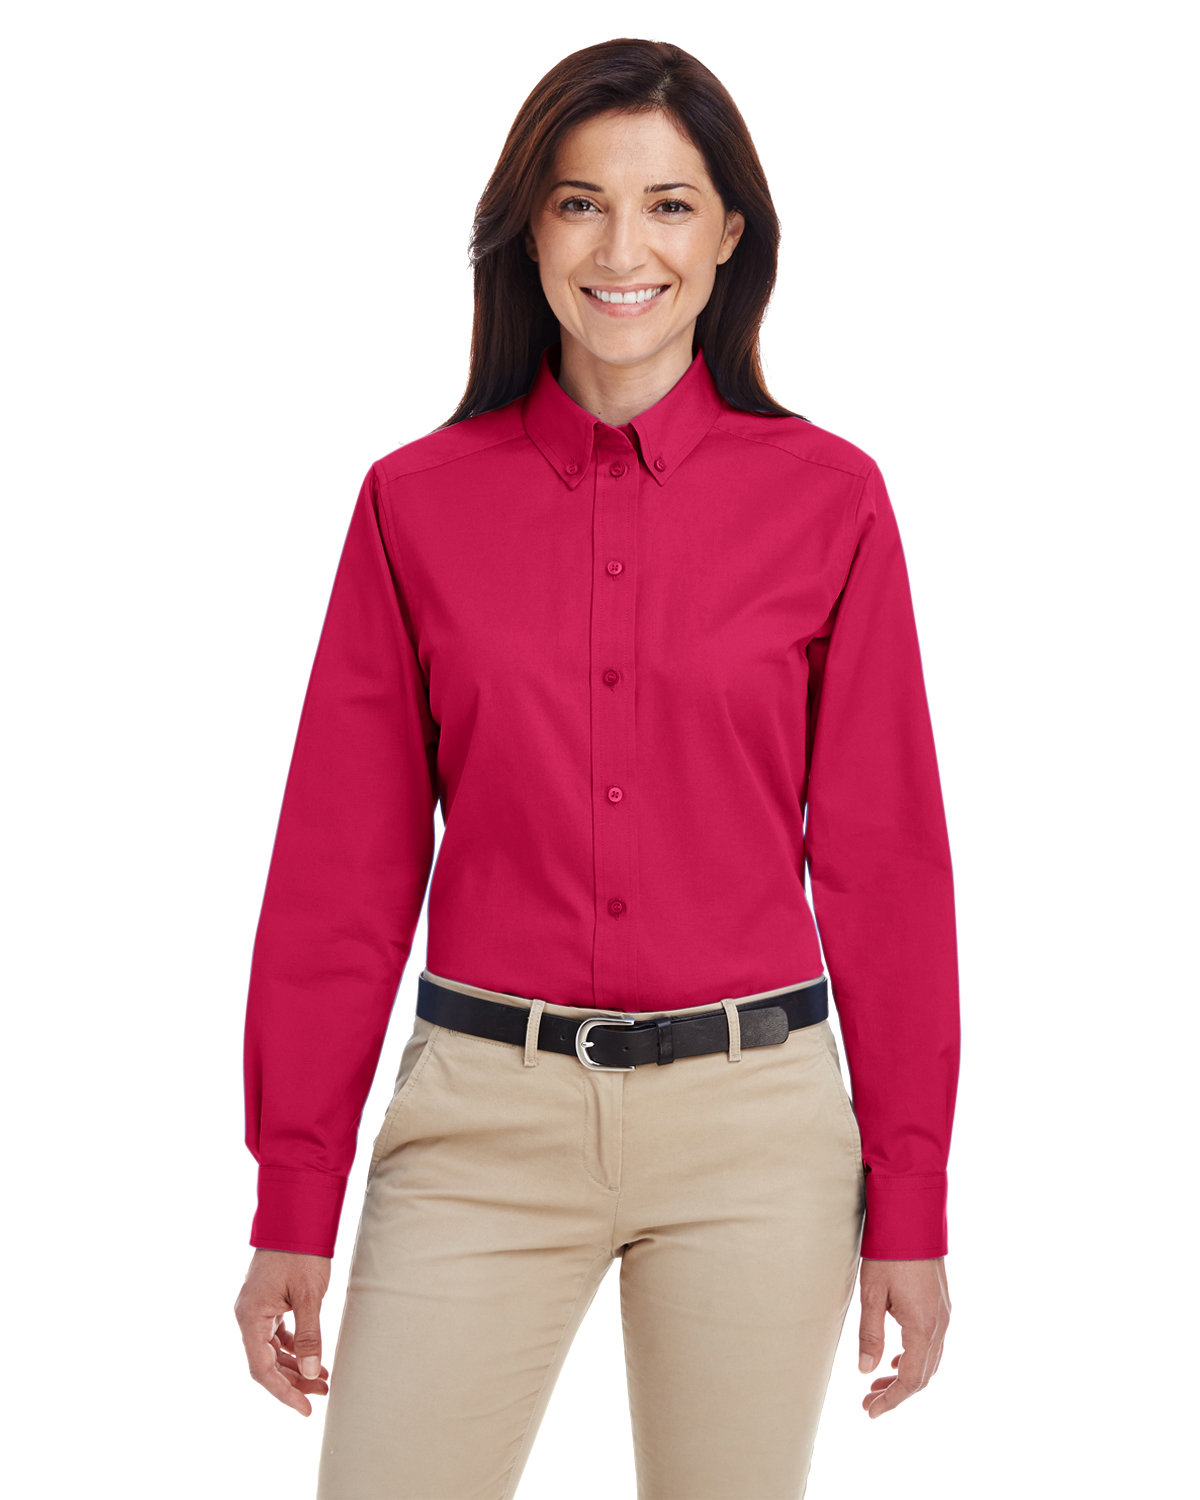 Harriton Ladies' Foundation 100% Cotton Long-Sleeve Twill Shirt withTeflon™ RED